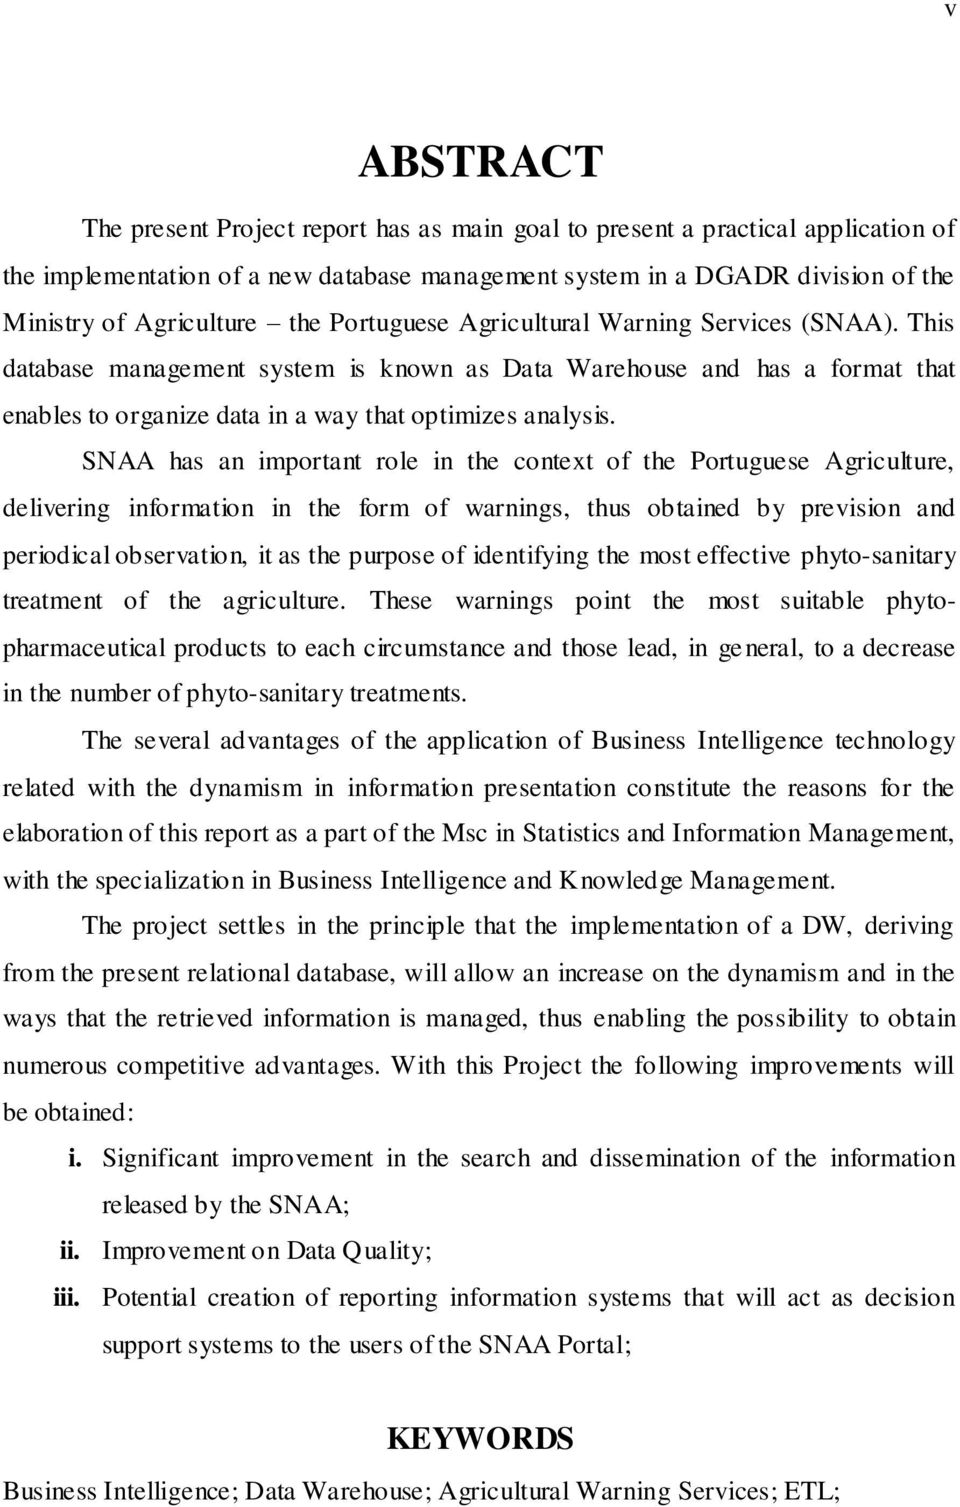 SNAA has an important role in the context of the Portuguese Agriculture, delivering information in the form of warnings, thus obtained by prevision and periodical observation, it as the purpose of